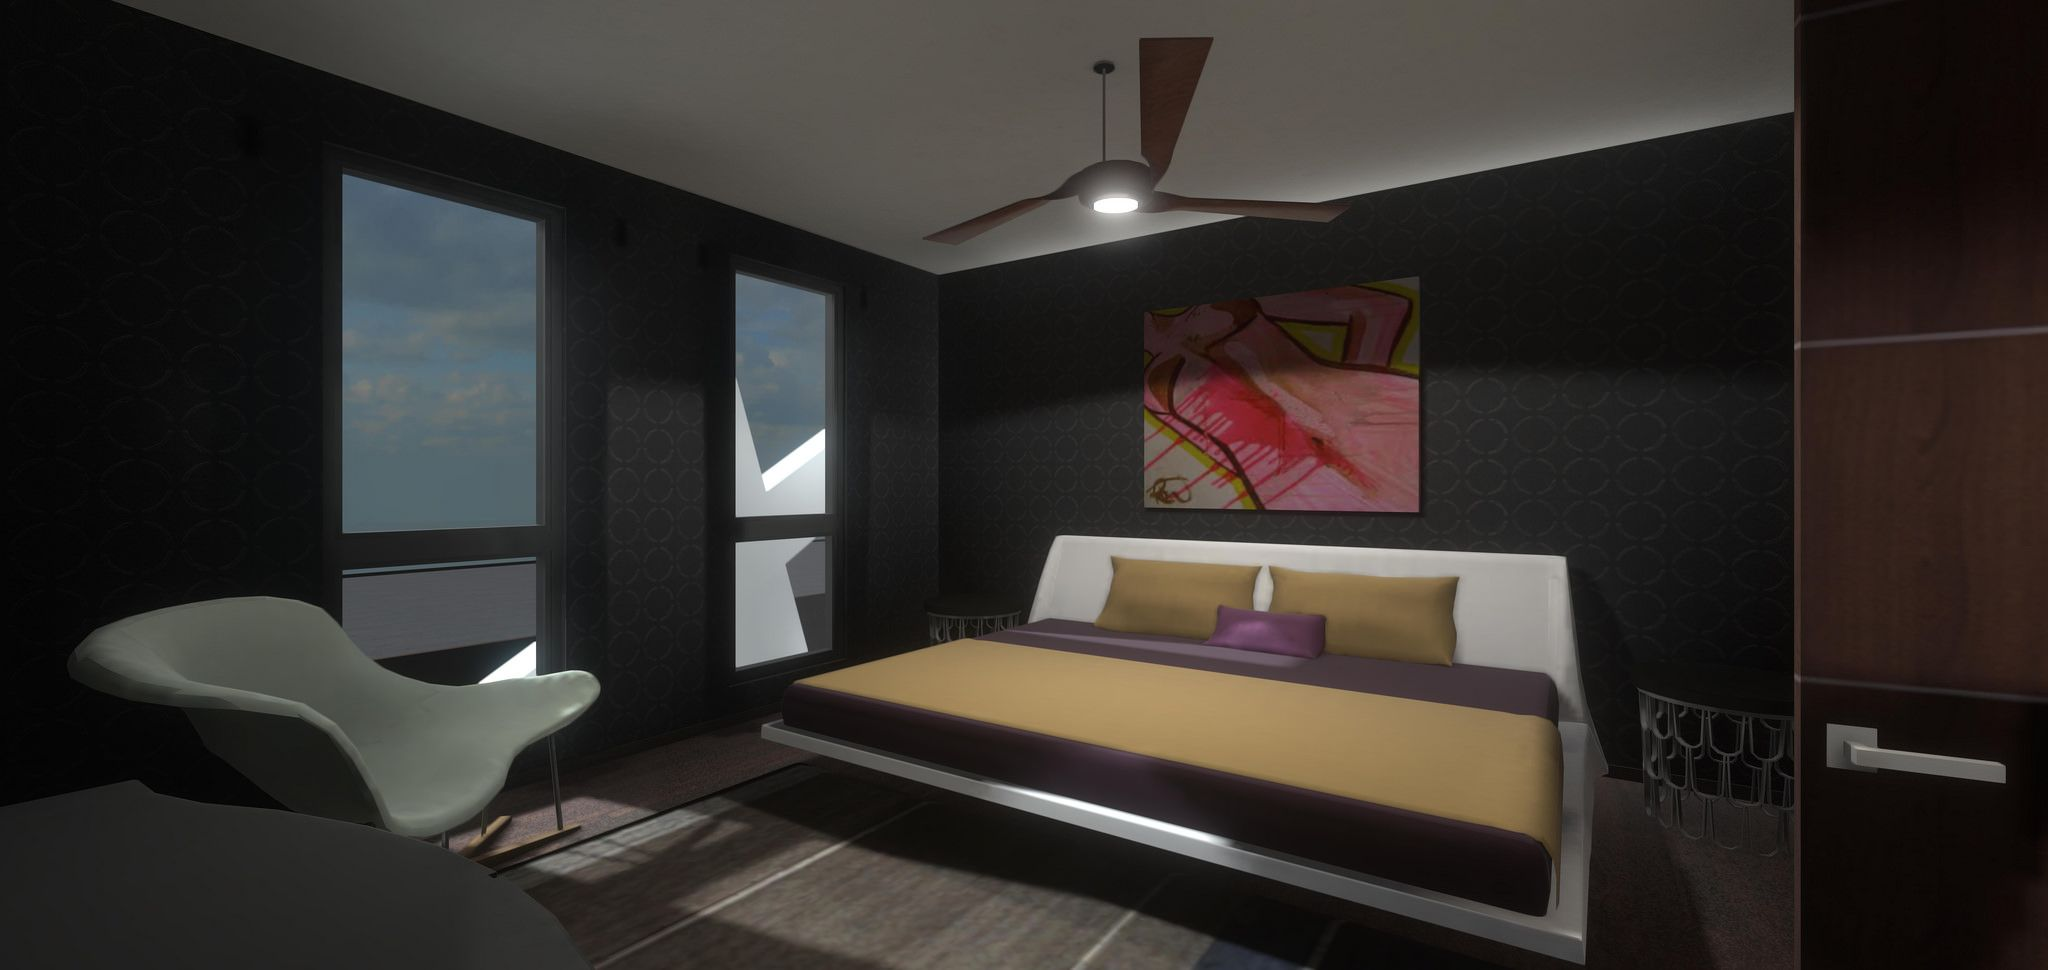 interior design in virtual reality via unity game engine and oculus rift for realtime 3d. Black Bedroom Furniture Sets. Home Design Ideas